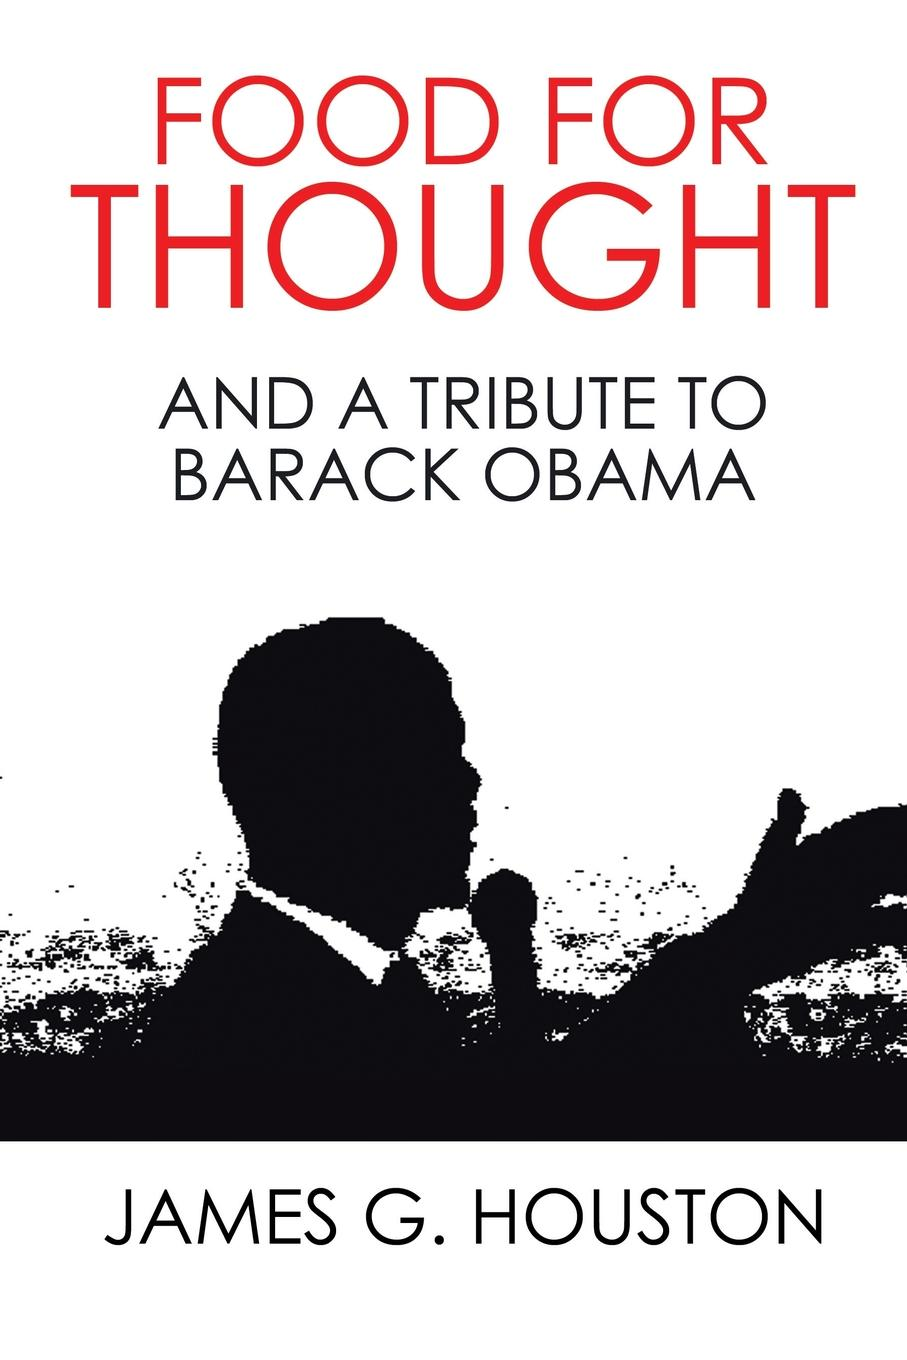 Food for Thought. And a Tribute to Barack Obama